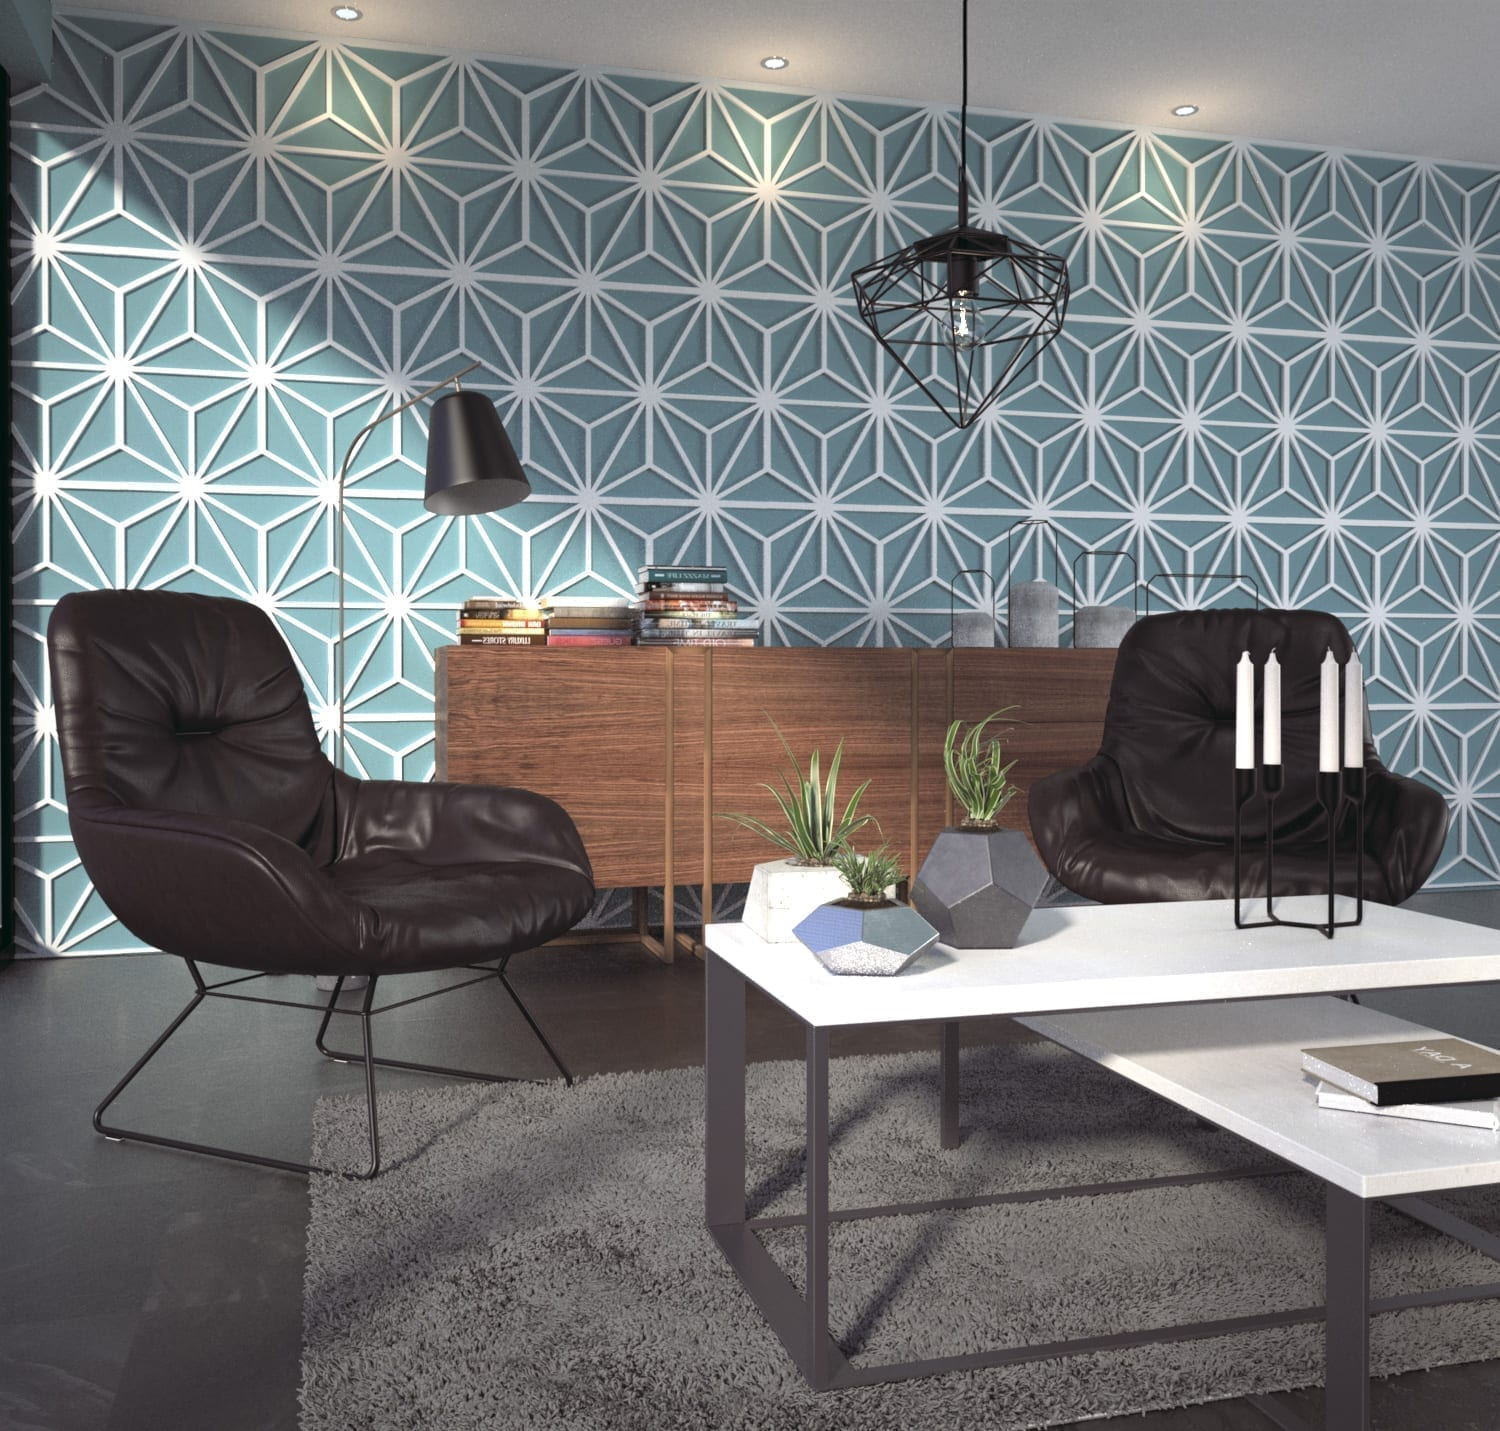 3d Wall Panels Mid Century Moonwallstickers Com - 3d Wall